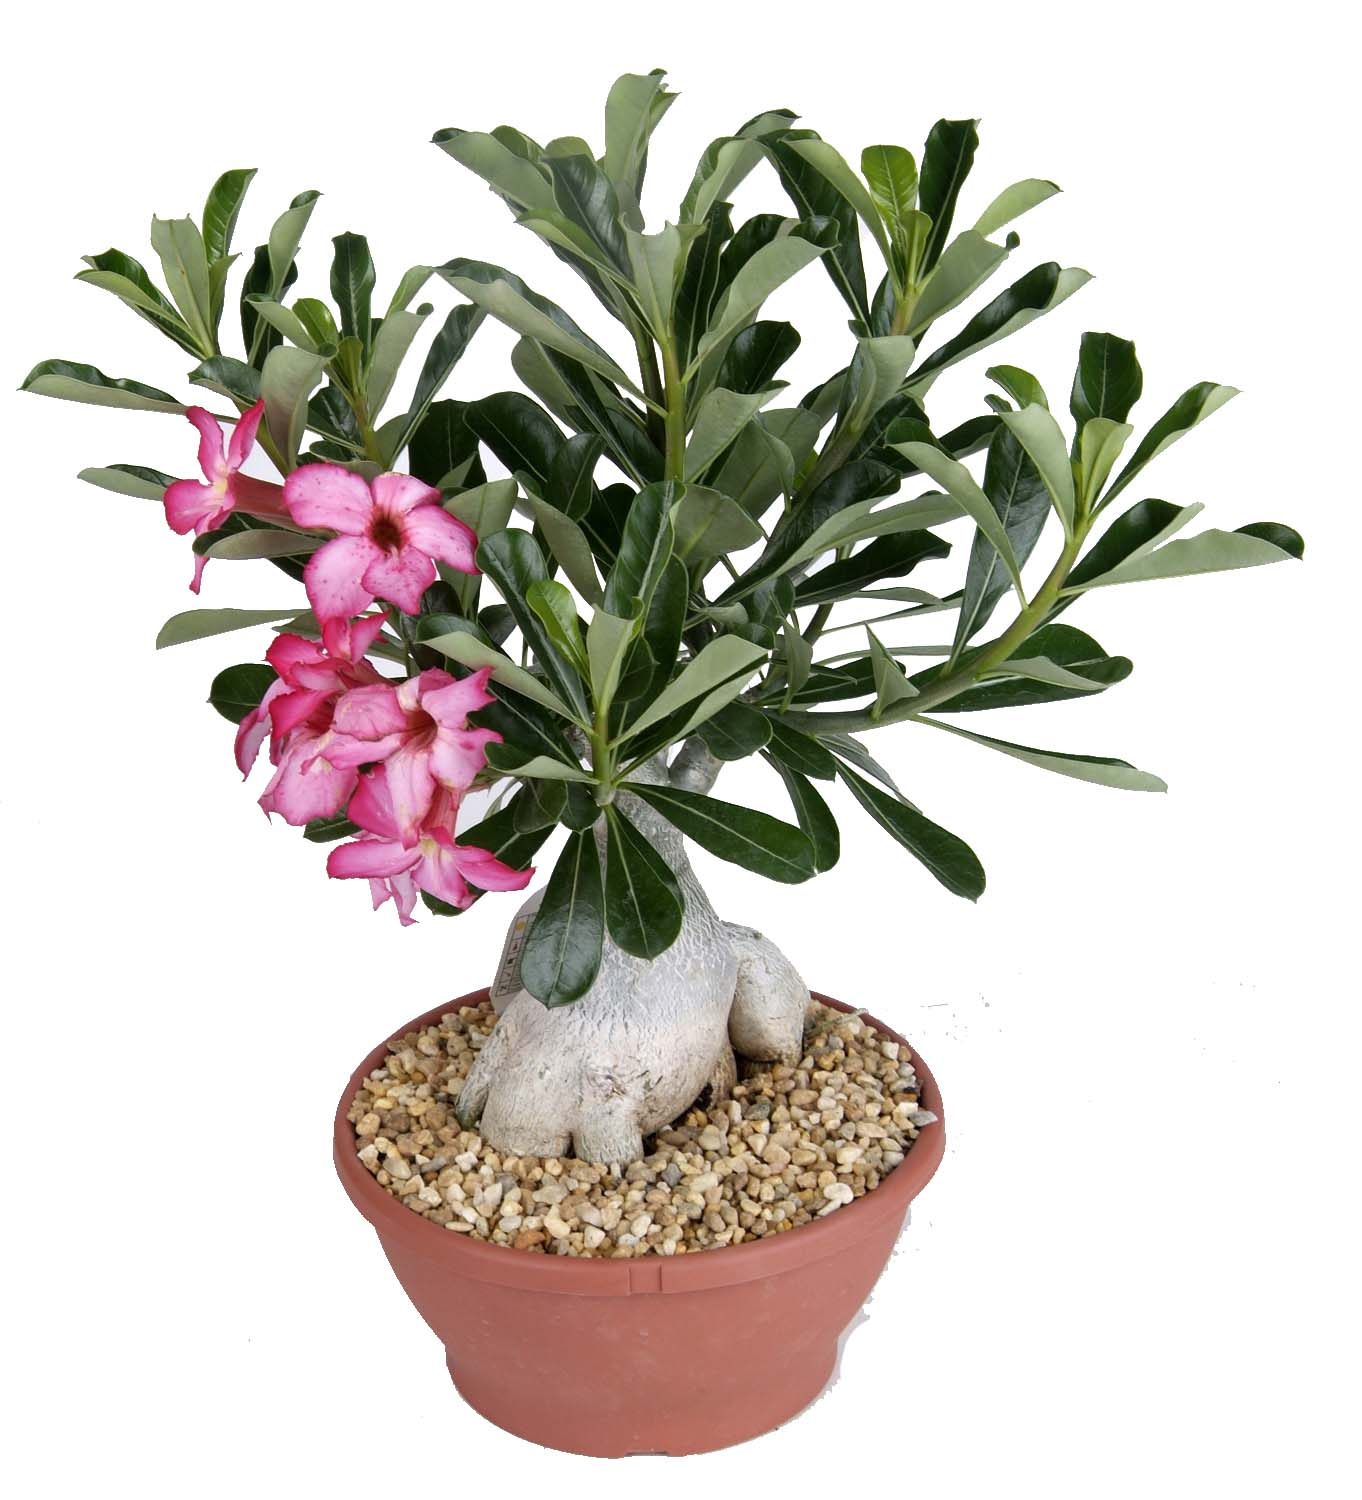 Costa farms indoor potted plant giveaway 5 winners ends 7 23 wishing penny - Indoor potted flowers ...